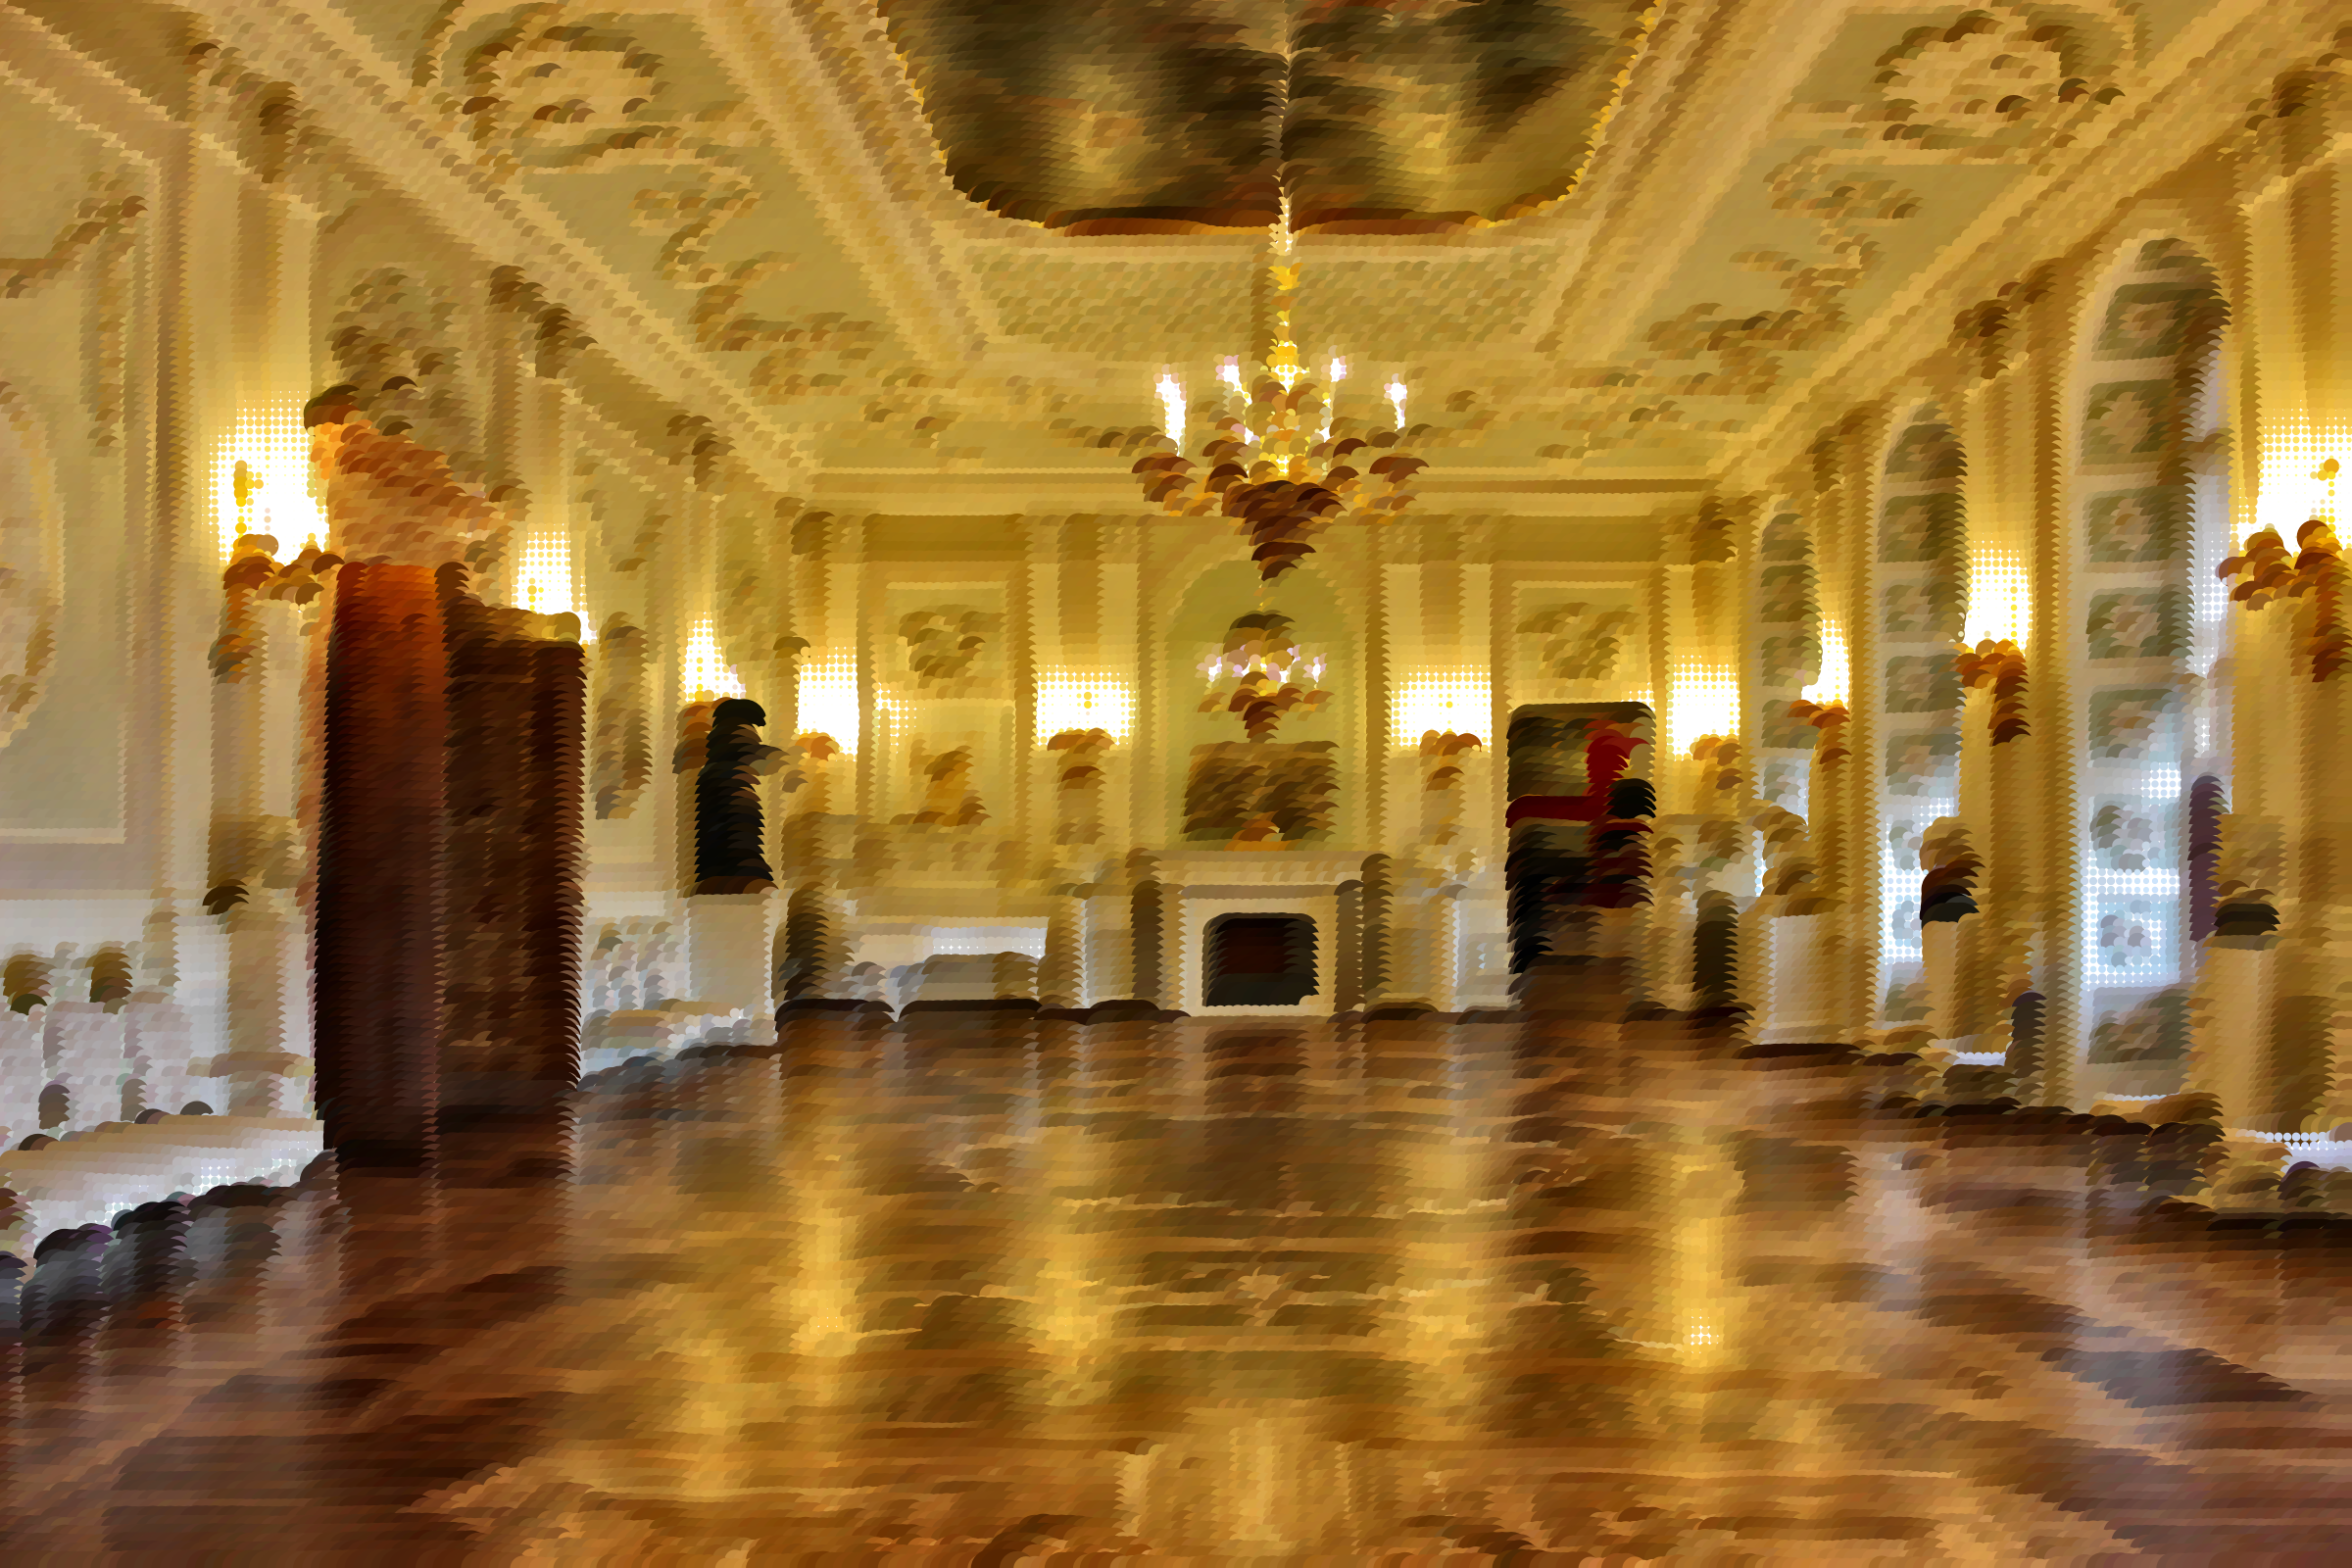 Surreal St Petersburg Palace Interior by GDJ